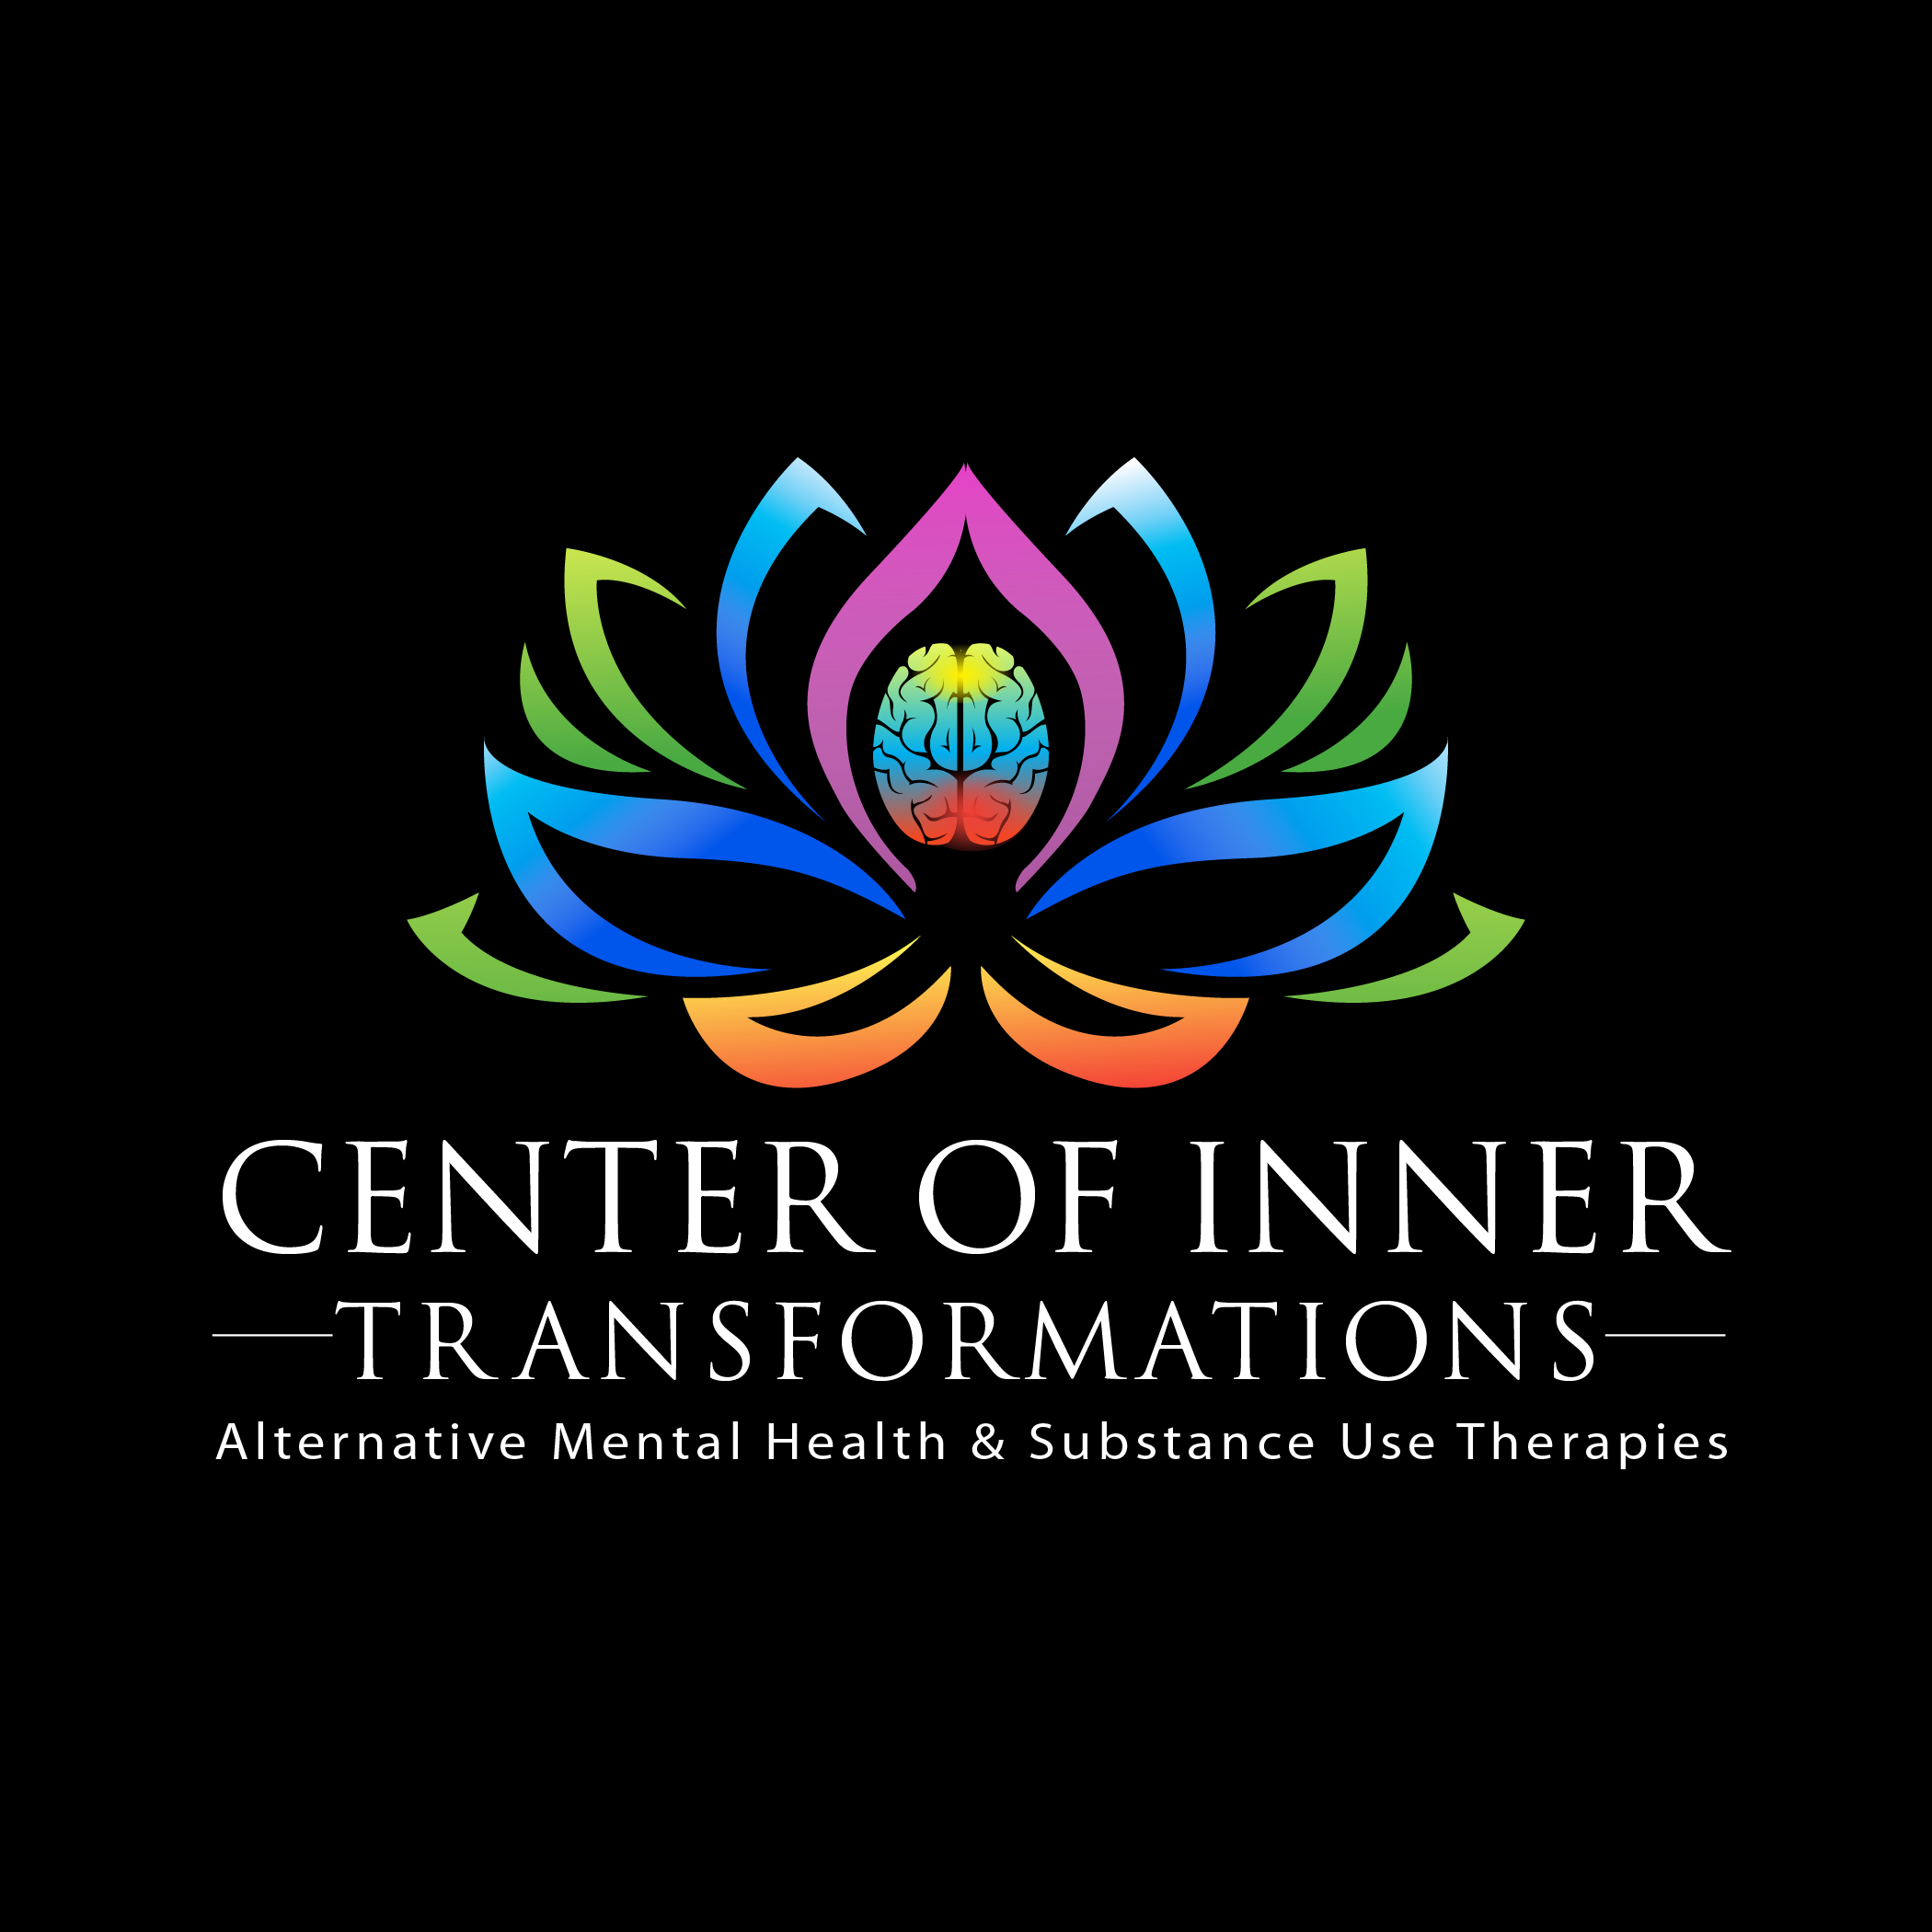 The Happy Therapist Sonia Singh and Center of Inner Transformations (COIT) Takes the Lead in Cannabis Health